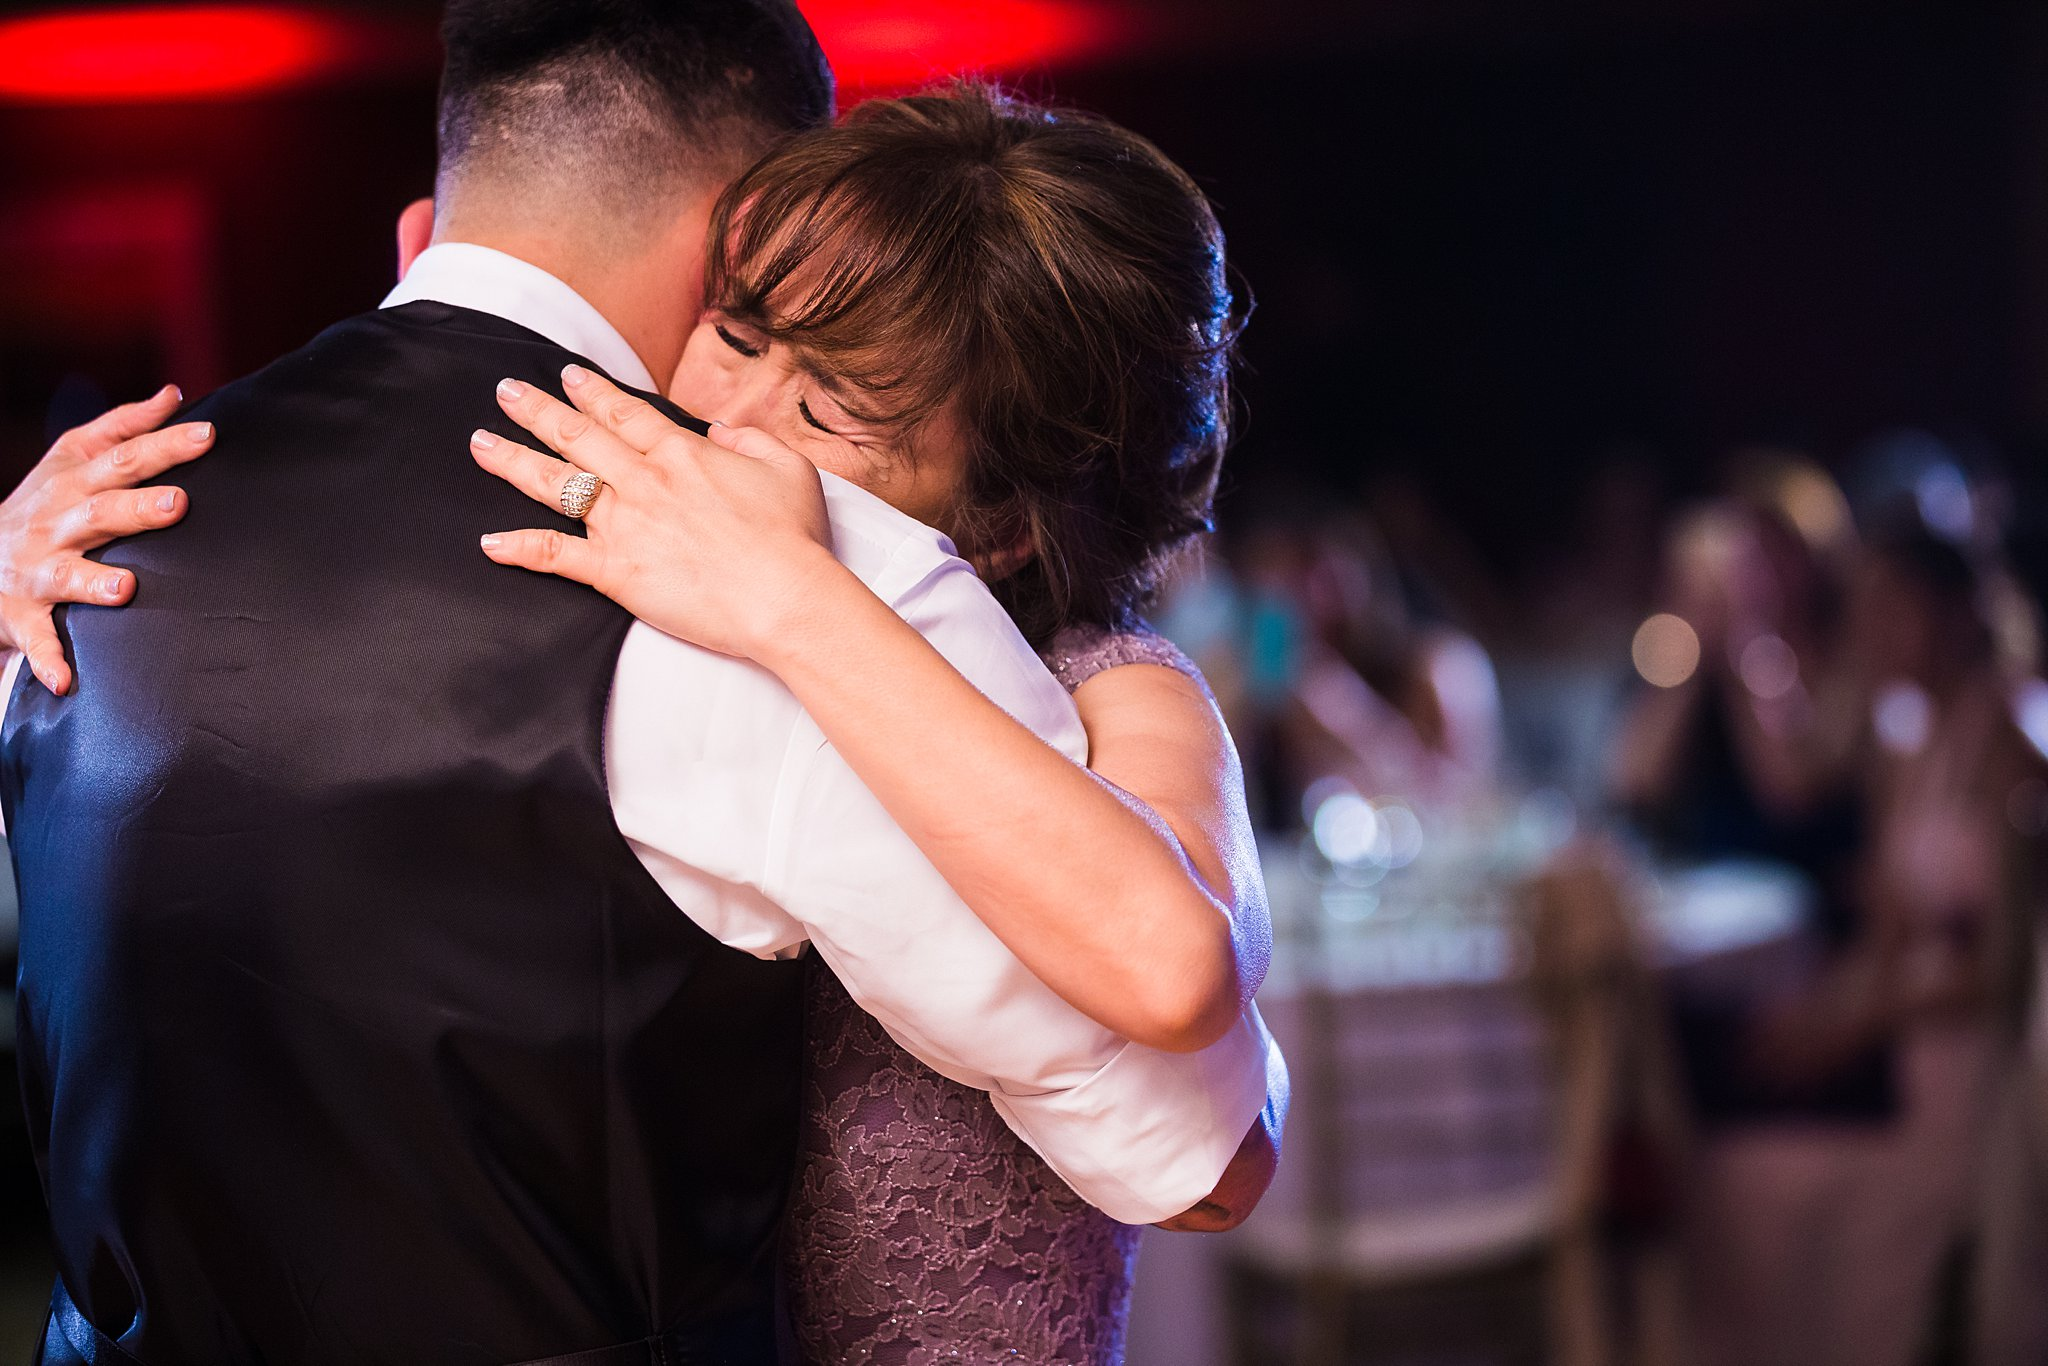 Emotional wedding photos. Mother of the groom cries on son's shoulder during the mother-son dance.